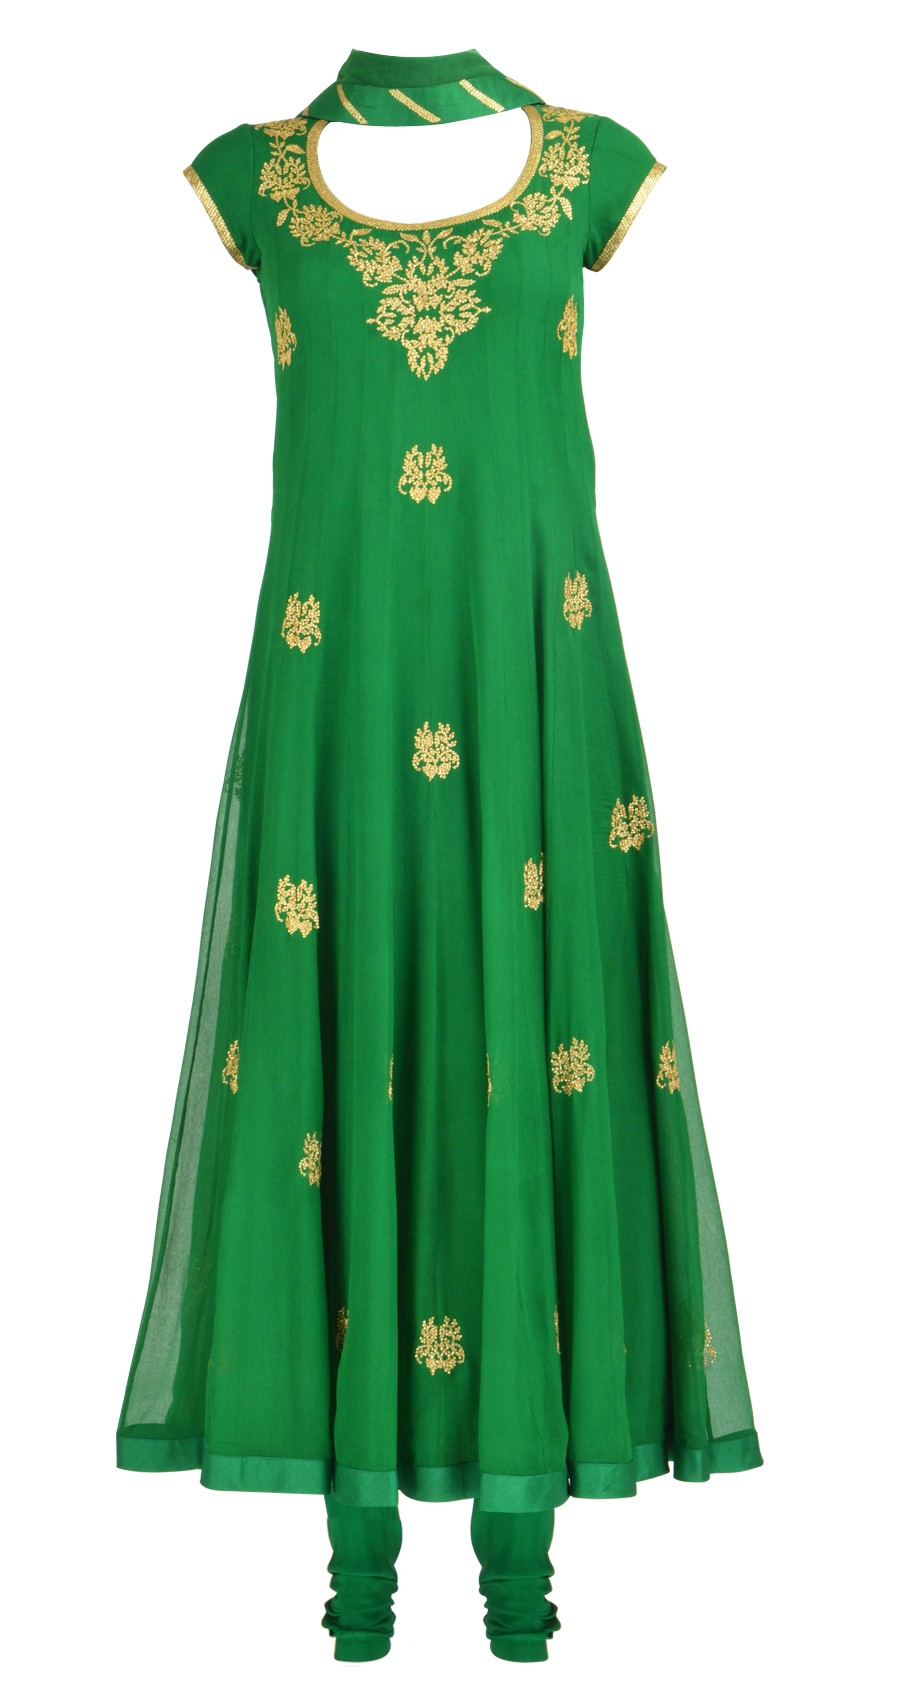 Emerald Green color fashion dress 2013